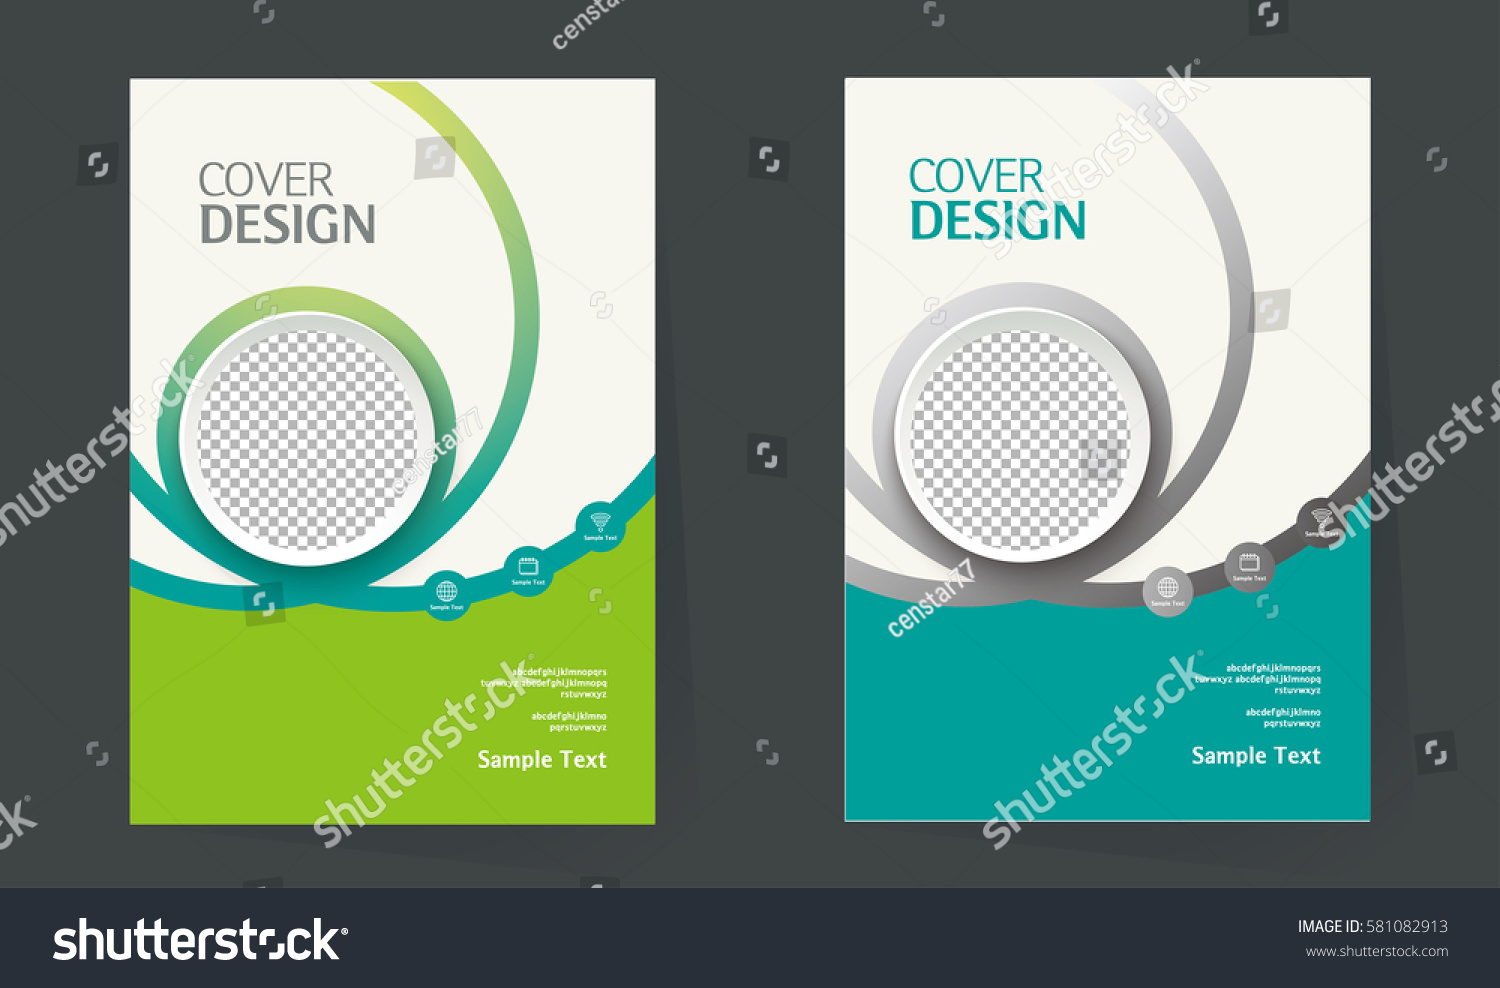 Cover Book Brochure Layout Vector : Book cover design layout brochure stock vector